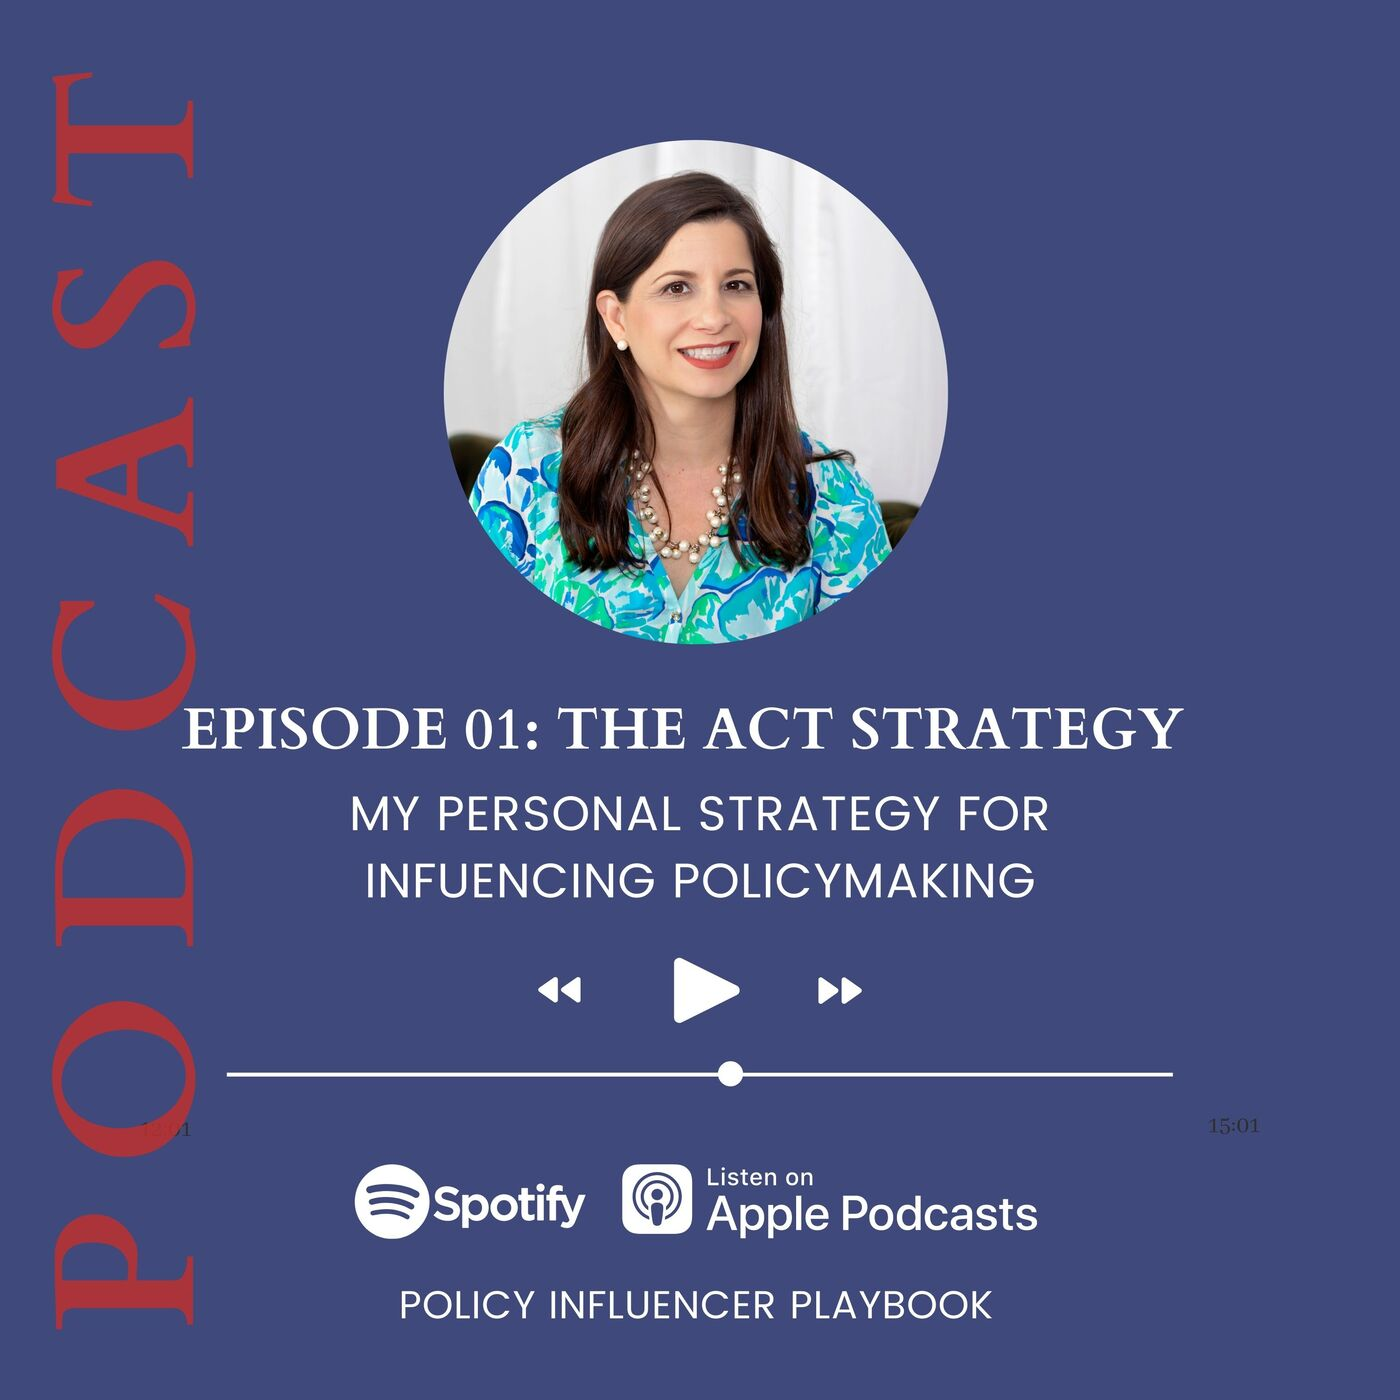 The ACT Framework for Influencing Public Policy